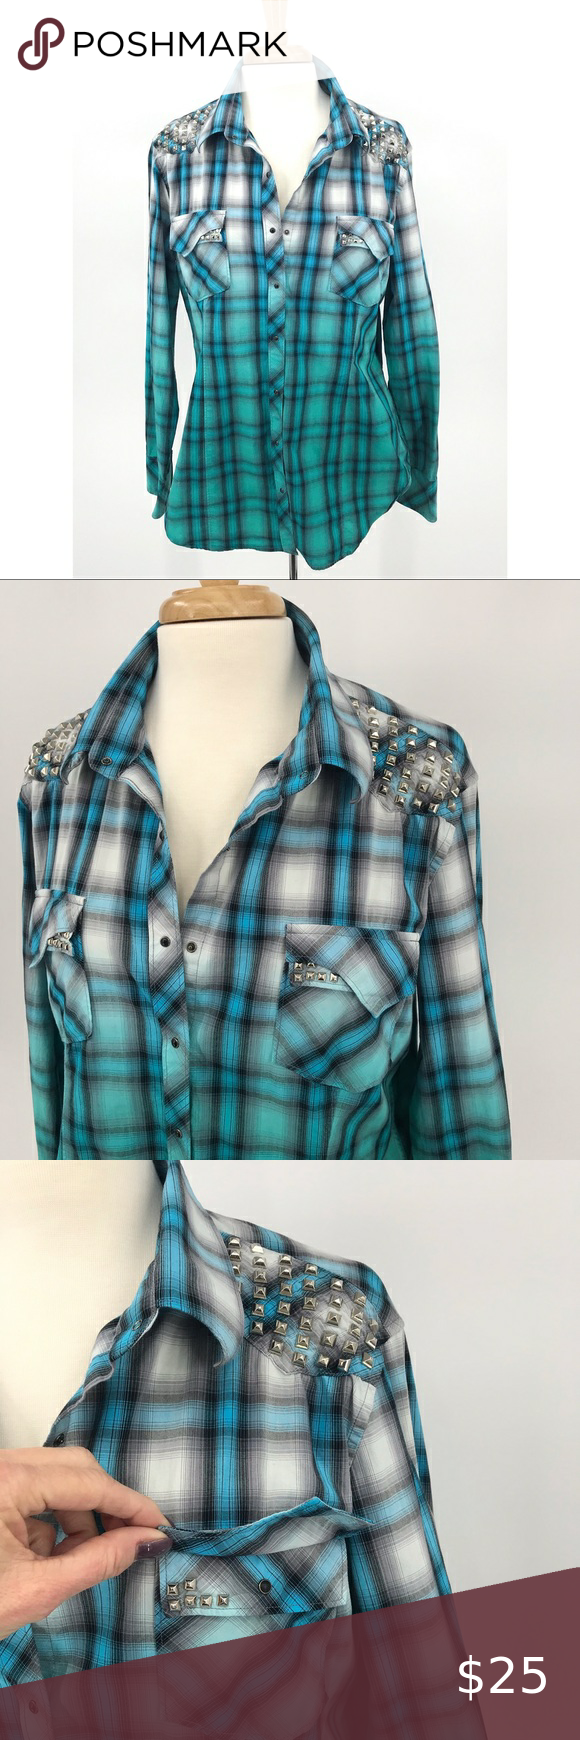 Rock and Roll Cowgirl studded shirt Sz XL Rock and Roll Cowgirl studded shirt Sz XL. Gorgeous color way, light fading into darker. All studs & buttons intact. Sleeves can be rolled. Preowned, last pic shows only flaw, several small holes in the back. Rock & Roll Cowgirl Tops Button Down Shirts #rockandrolloutfits